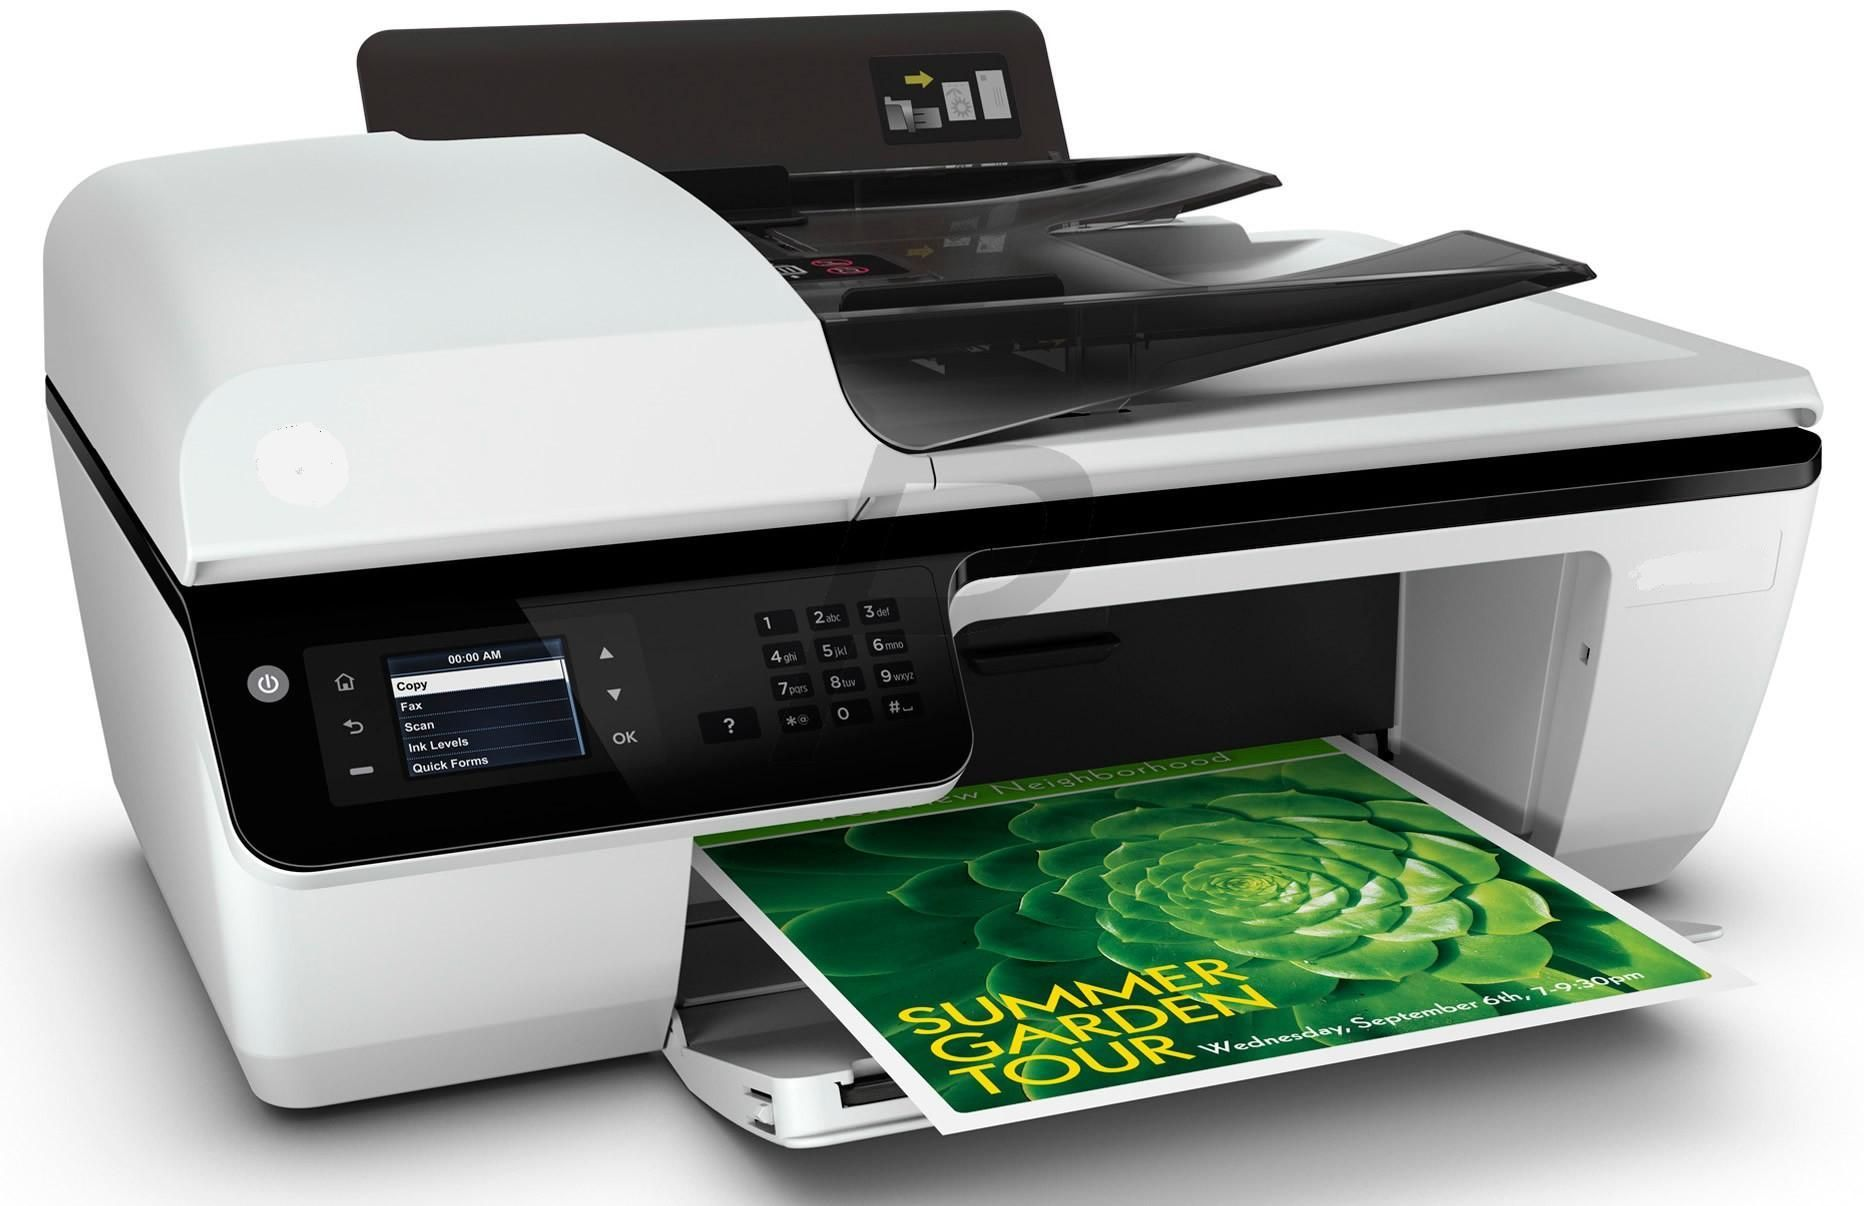 Hp printer drivers for windows 8 deskjet 1050 - The 25 Best Hp Printer Software Ideas On Pinterest Hotmail Account Sign In Hotmail Ca Sign In And Outlook Sign In Email